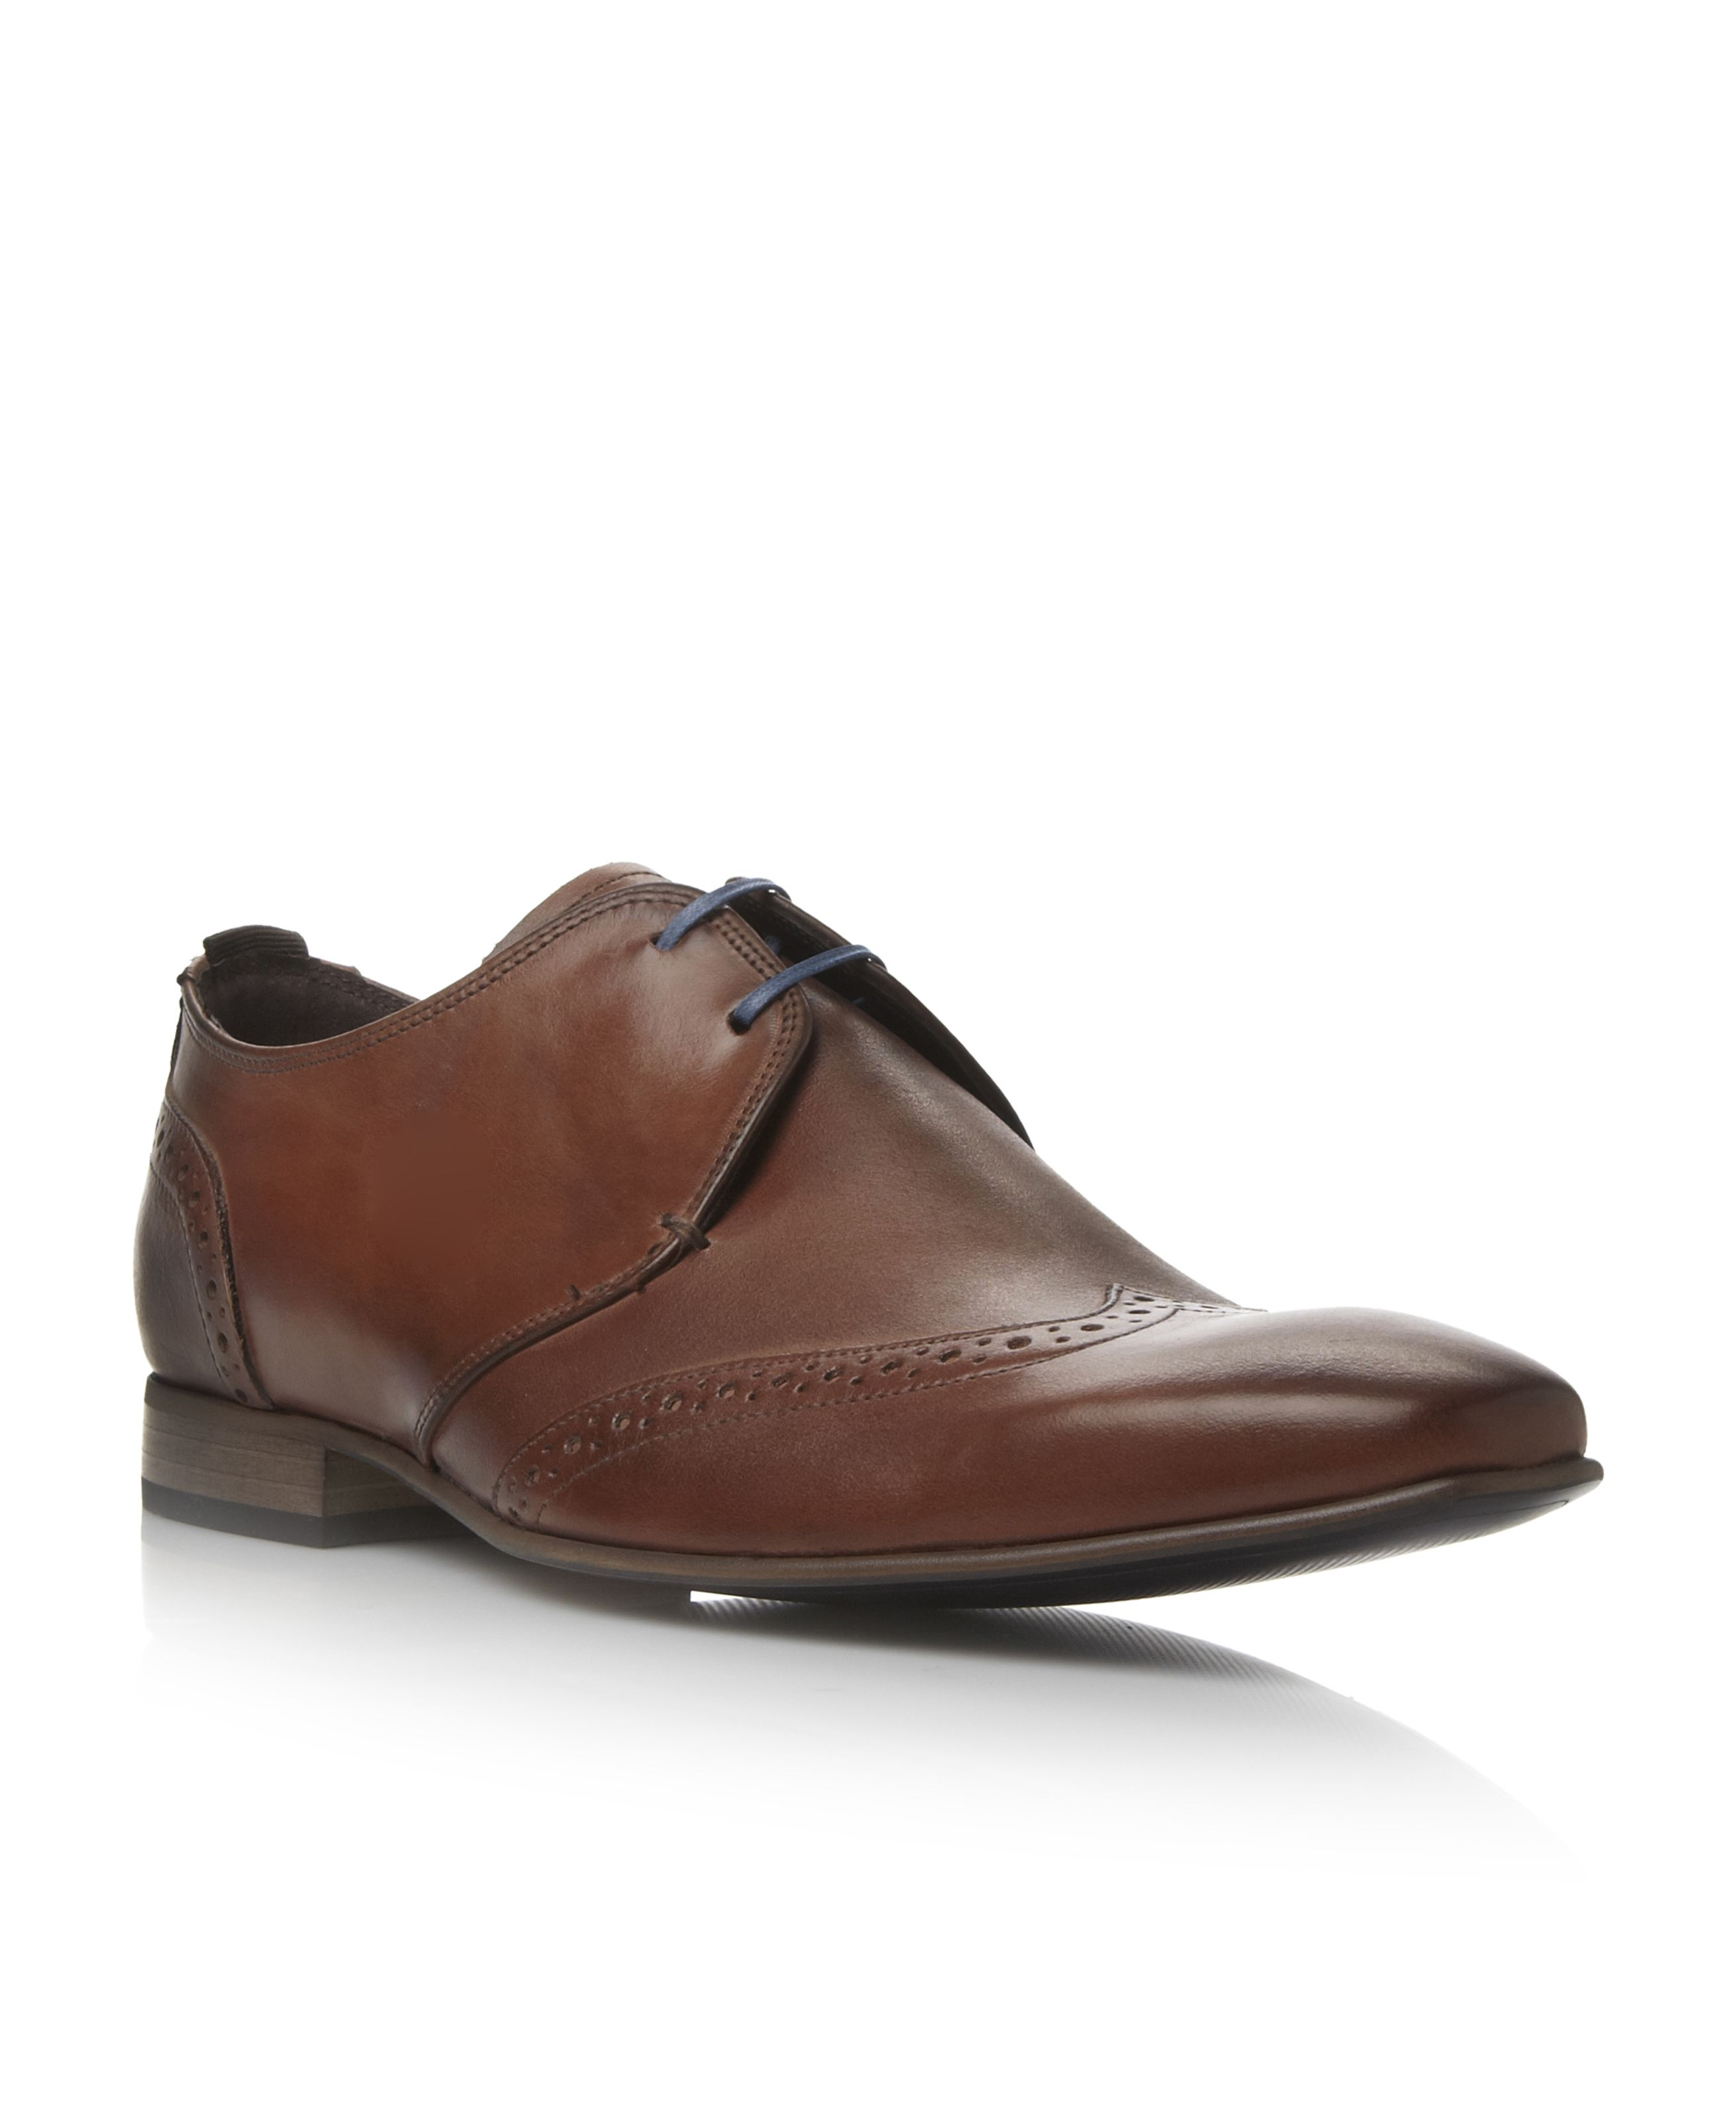 Ashdown lace up wingtip gibson shoes